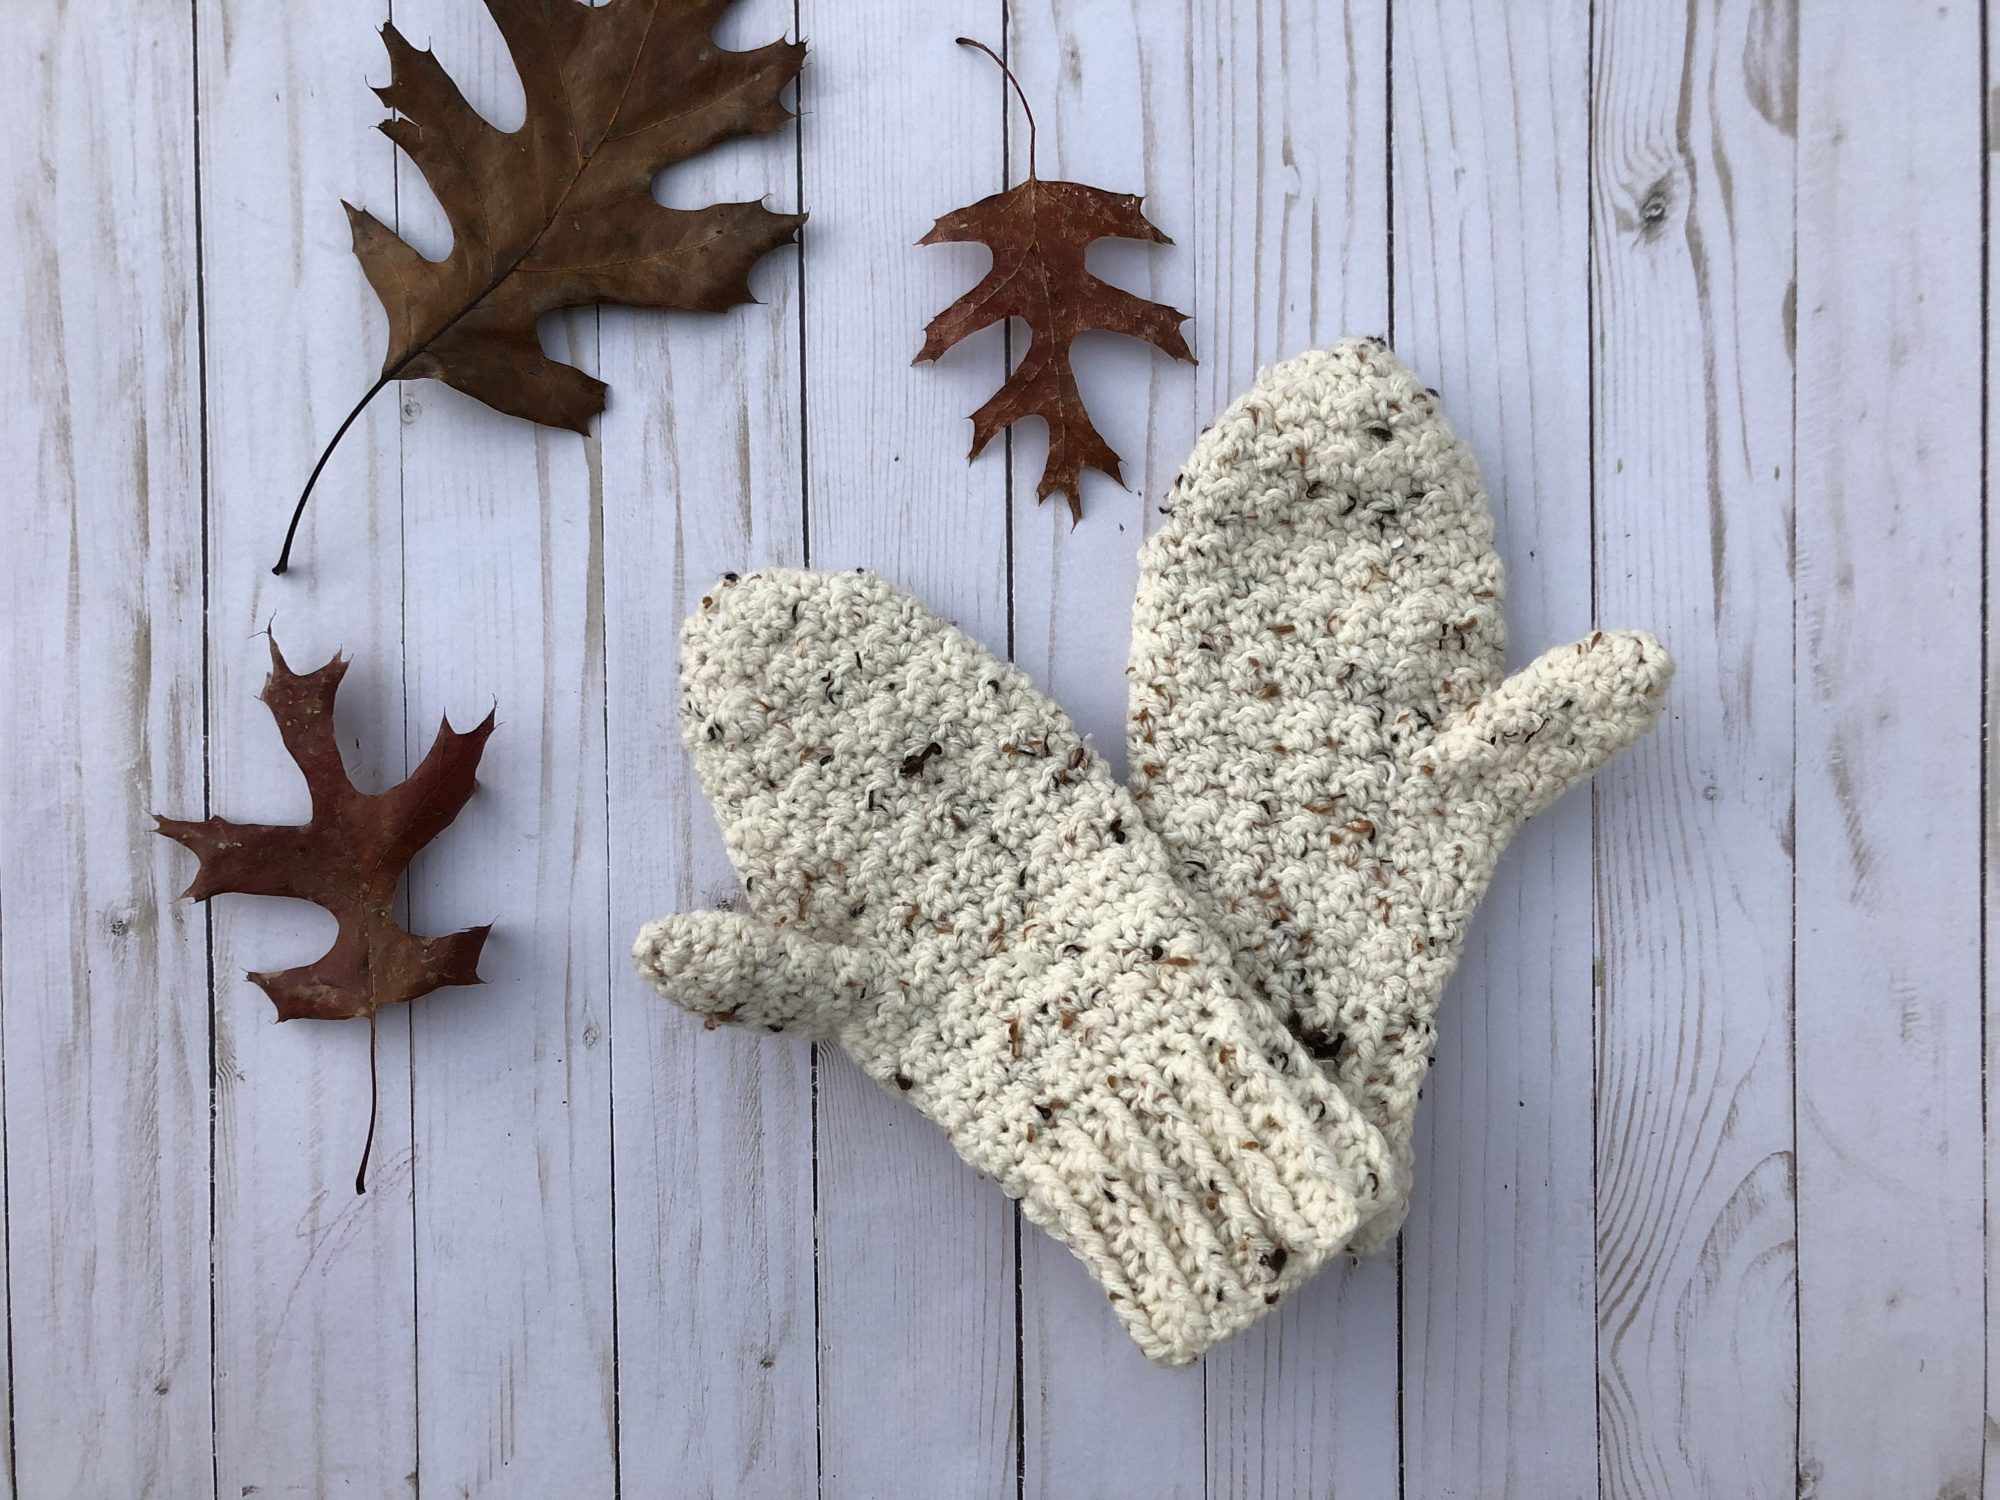 The Lemon Peel Mittens offer textured stitches, a shaped thumb, and ribbing at the wrist.